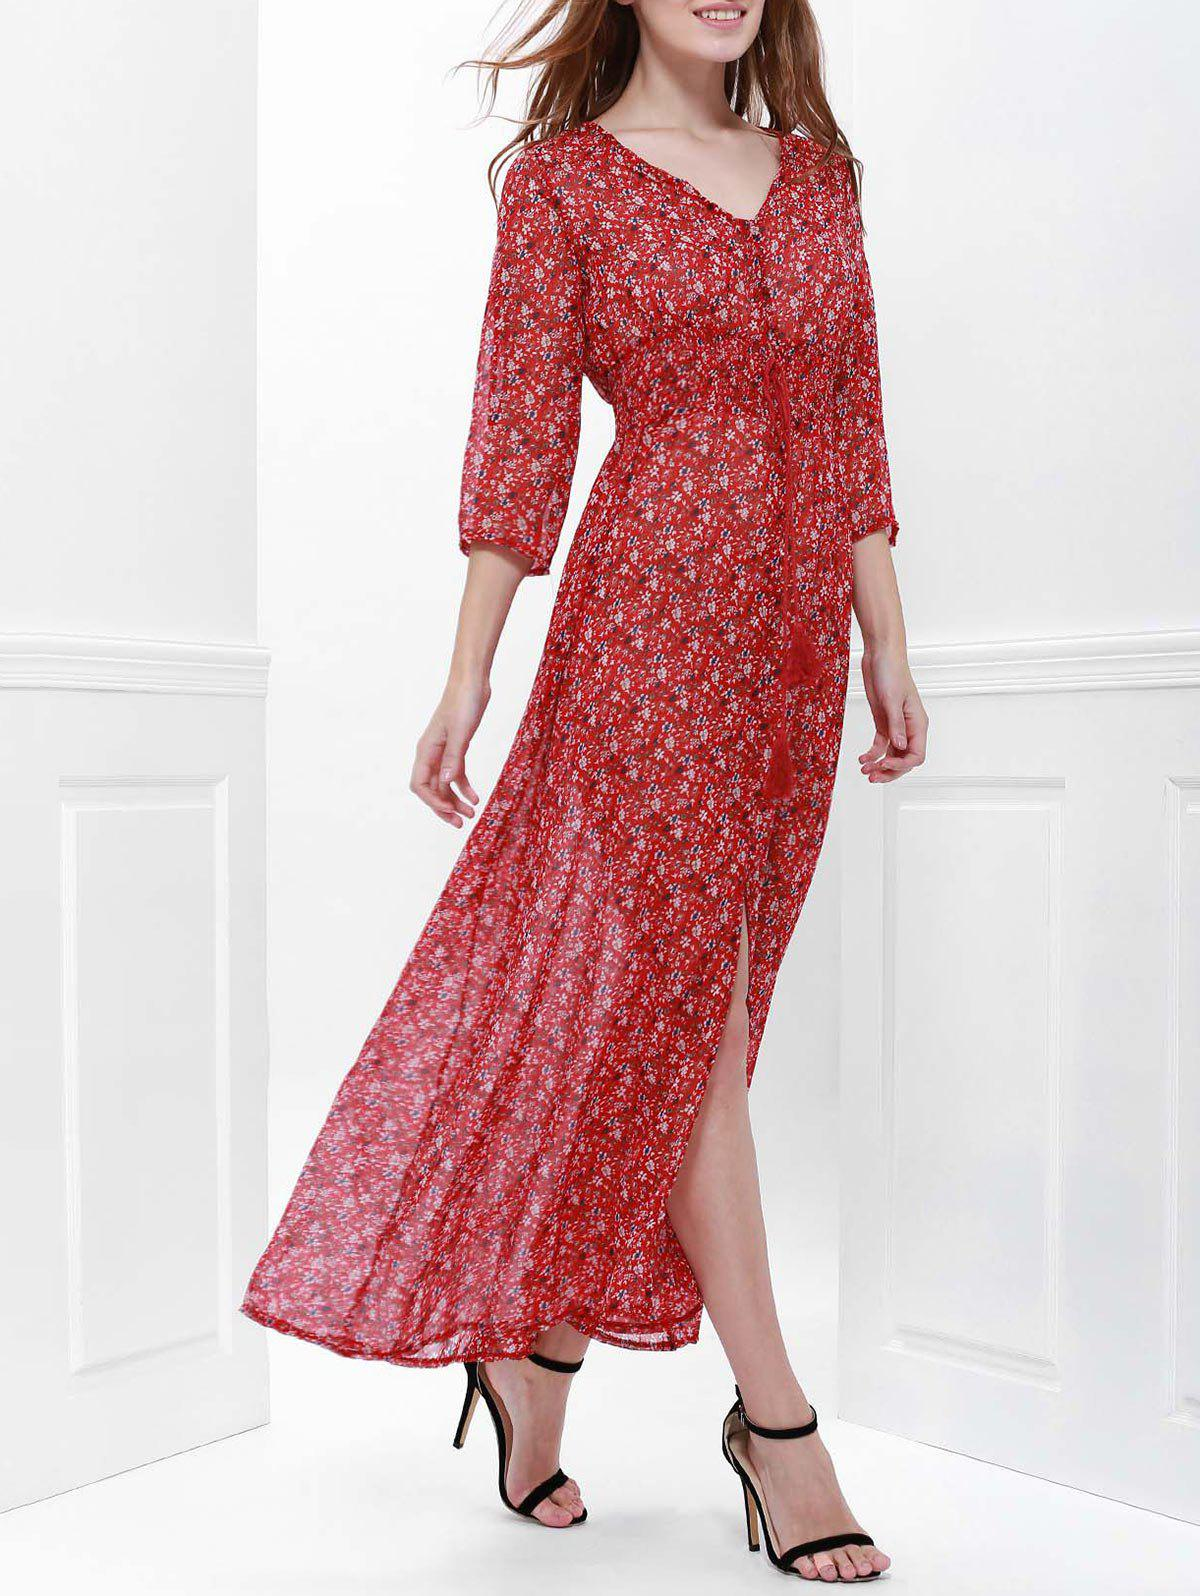 New High Split Printed Maxi Dress with Sleeves